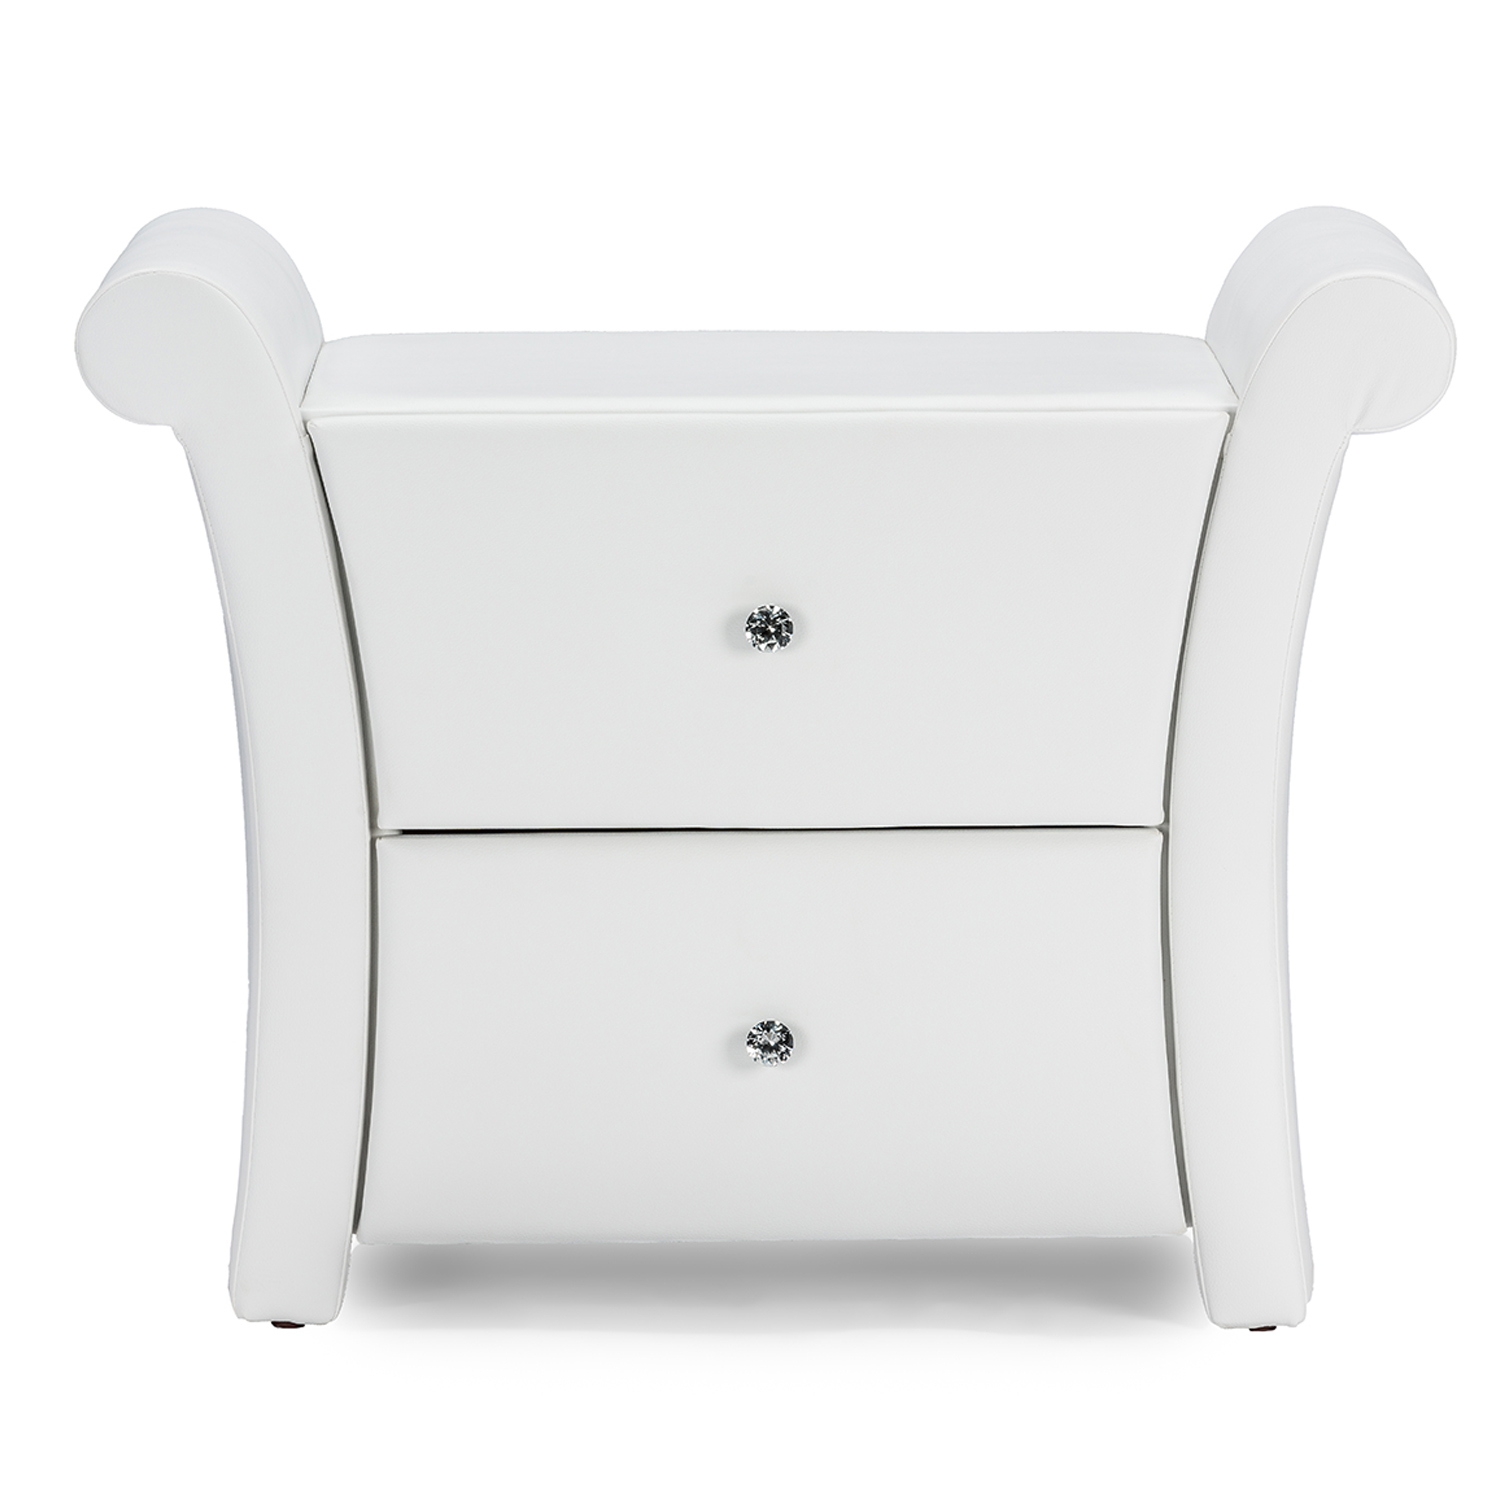 baxton studio victoria matte white pu leather 2 storage drawers nightstand bedside table baxton studio restaurant